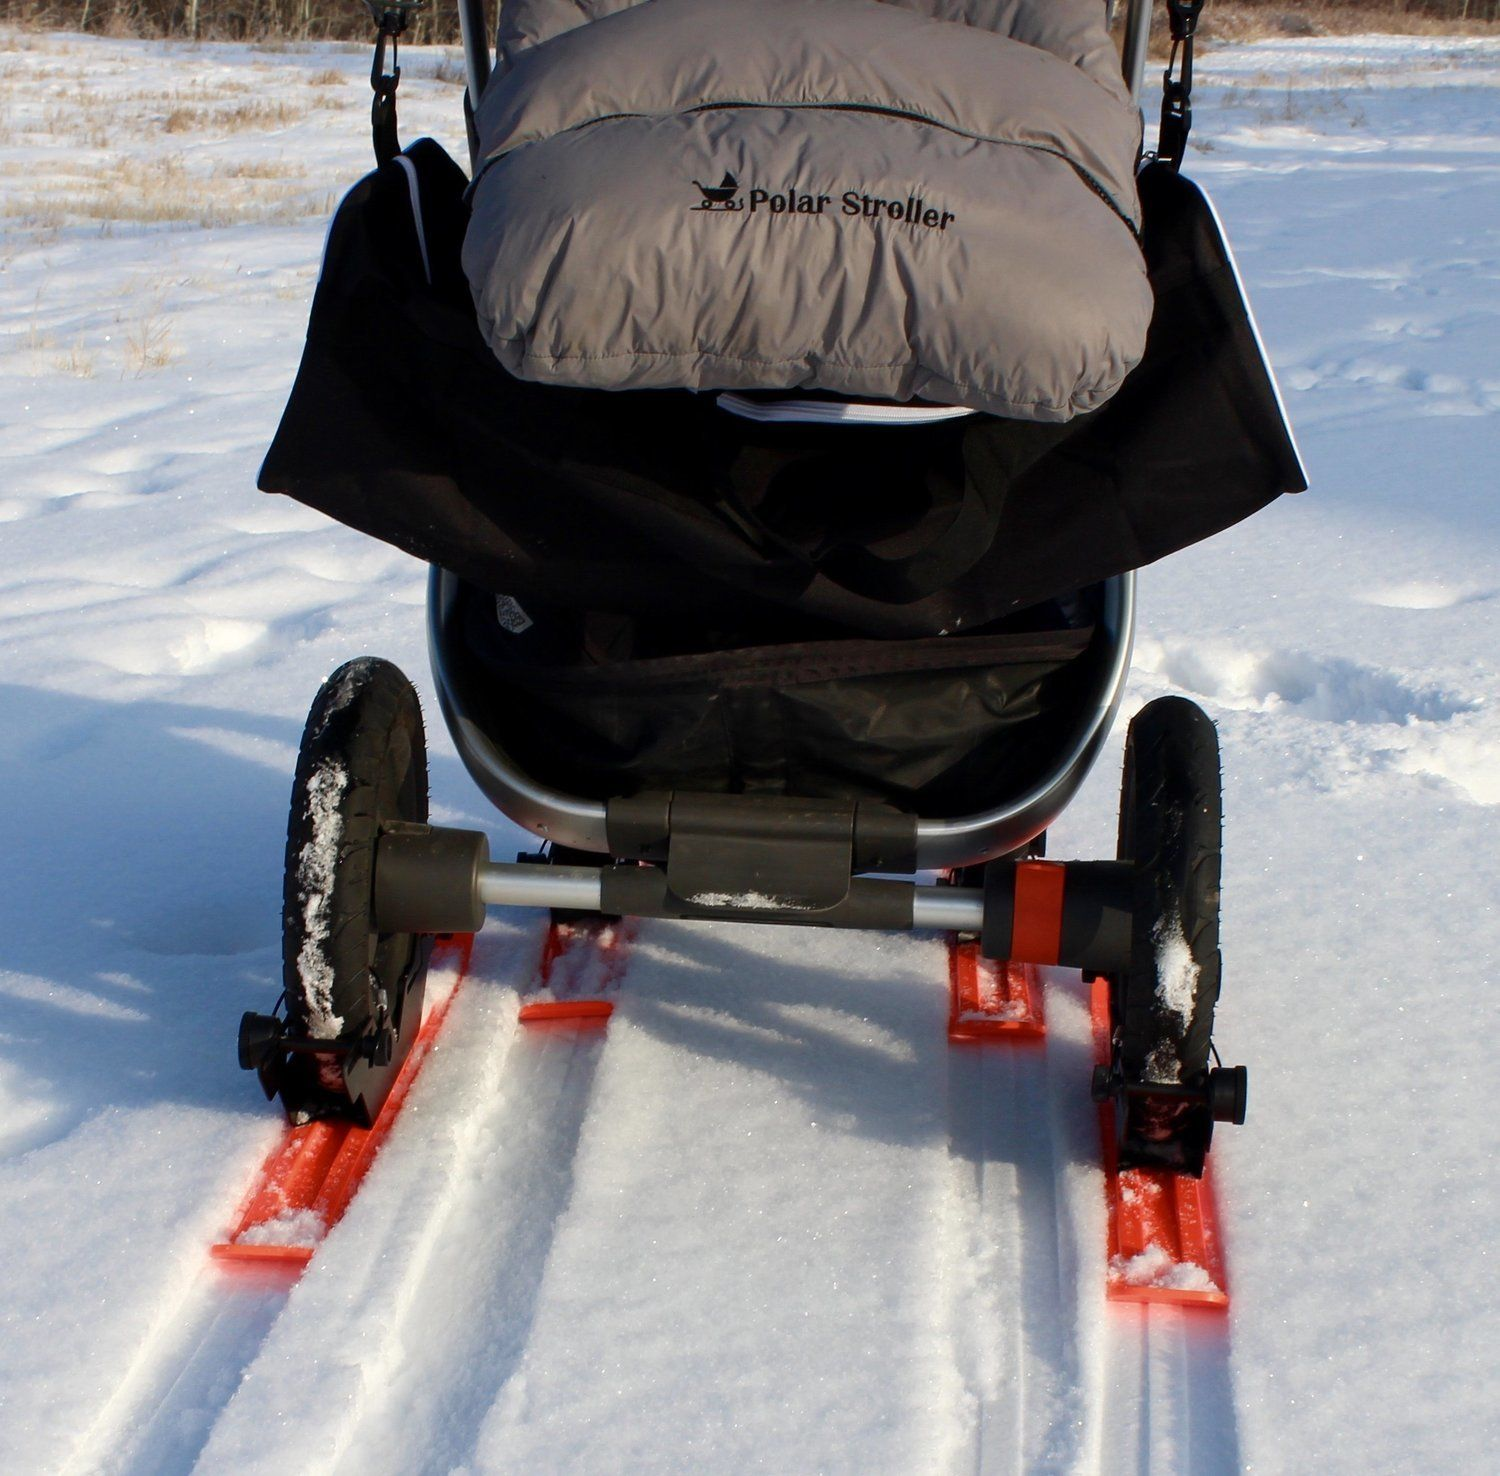 RX4 4 Wheel Stroller Ski Set in 2020 Stroller, Ski set